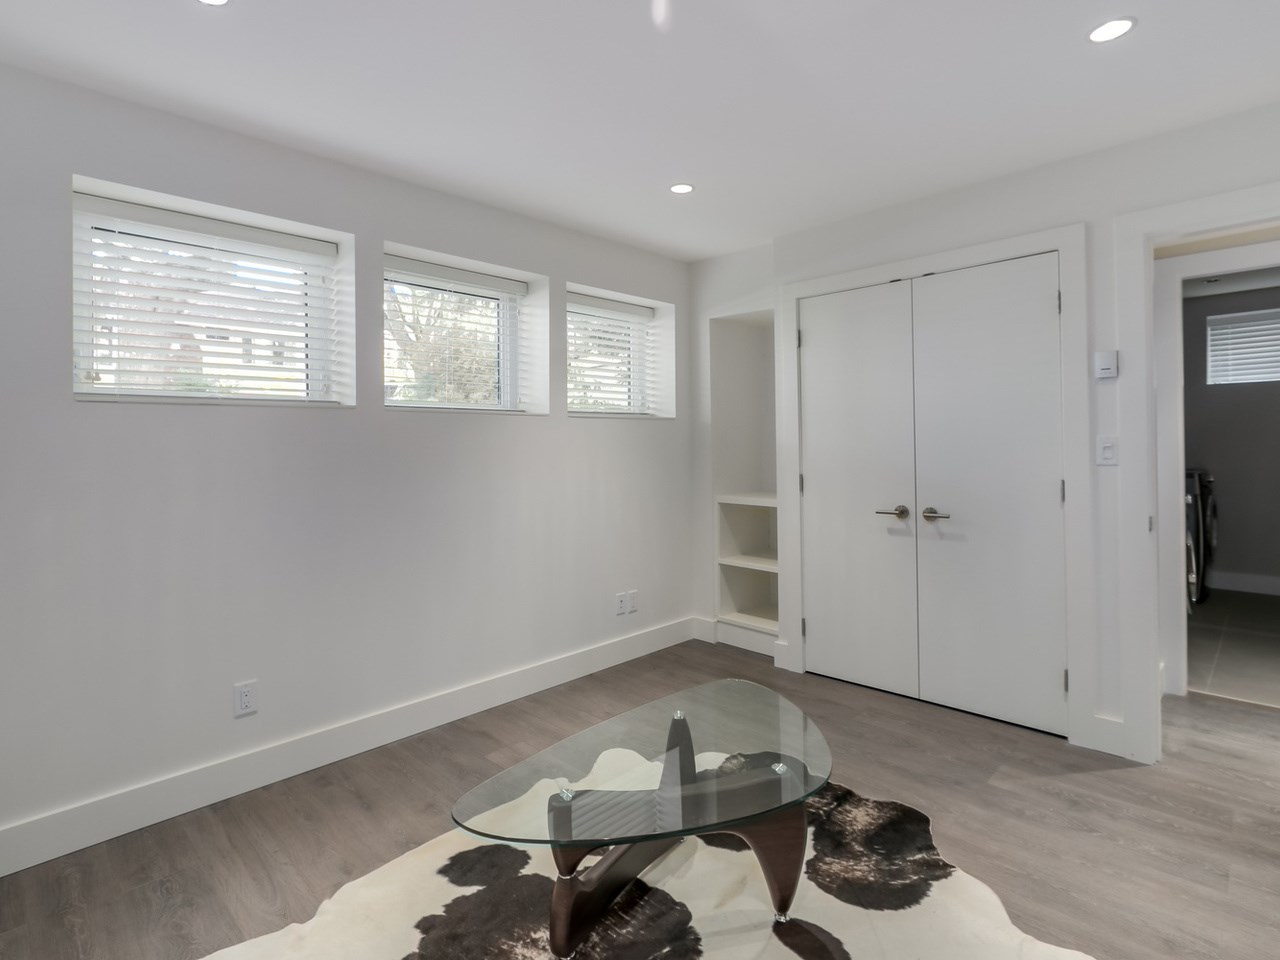 Photo 16: 2596 W 13TH AVENUE in Vancouver: Kitsilano House for sale (Vancouver West)  : MLS® # R2059928